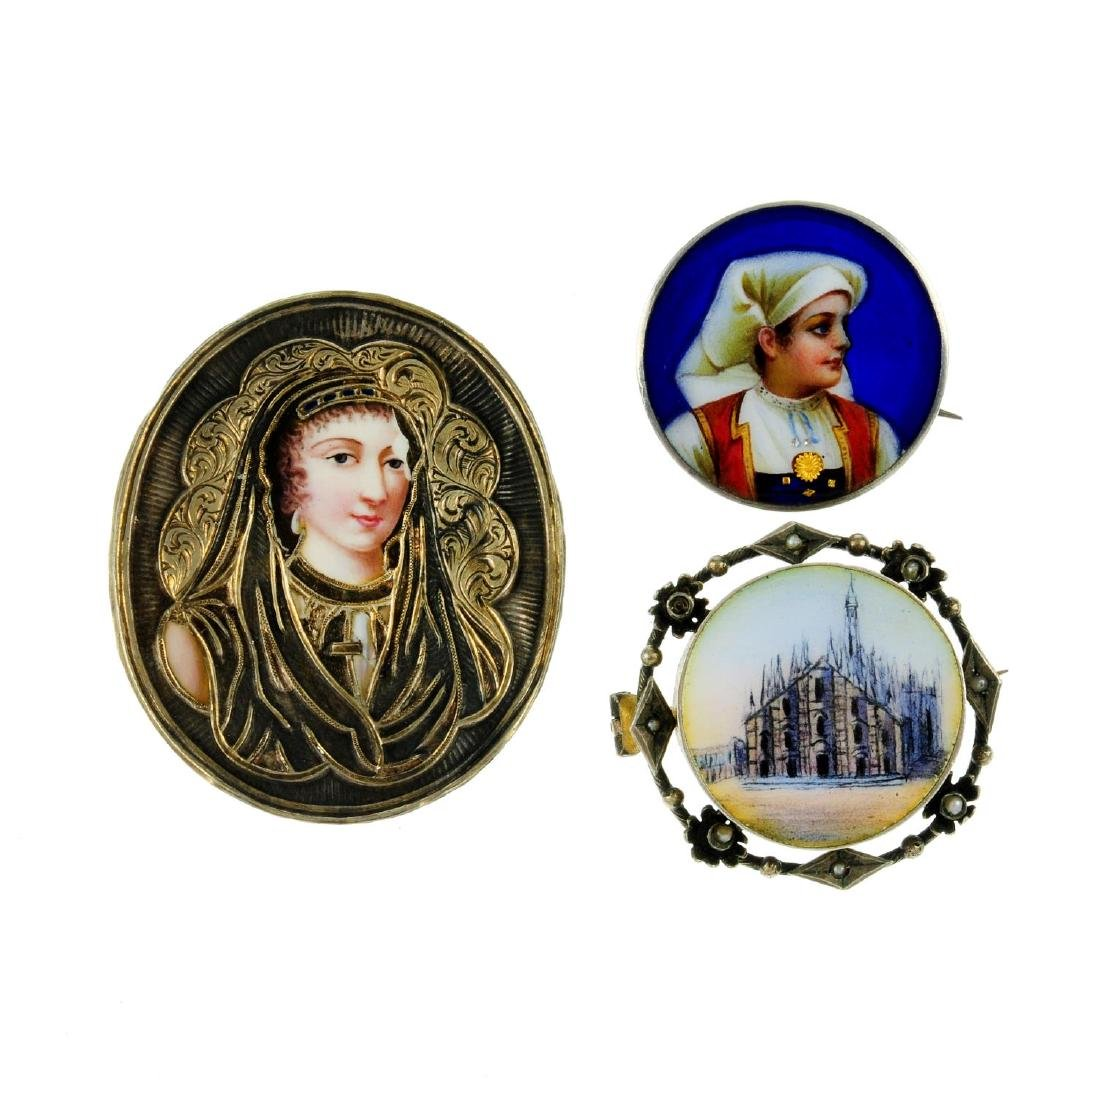 A selection of enamel jewellery. To include a button